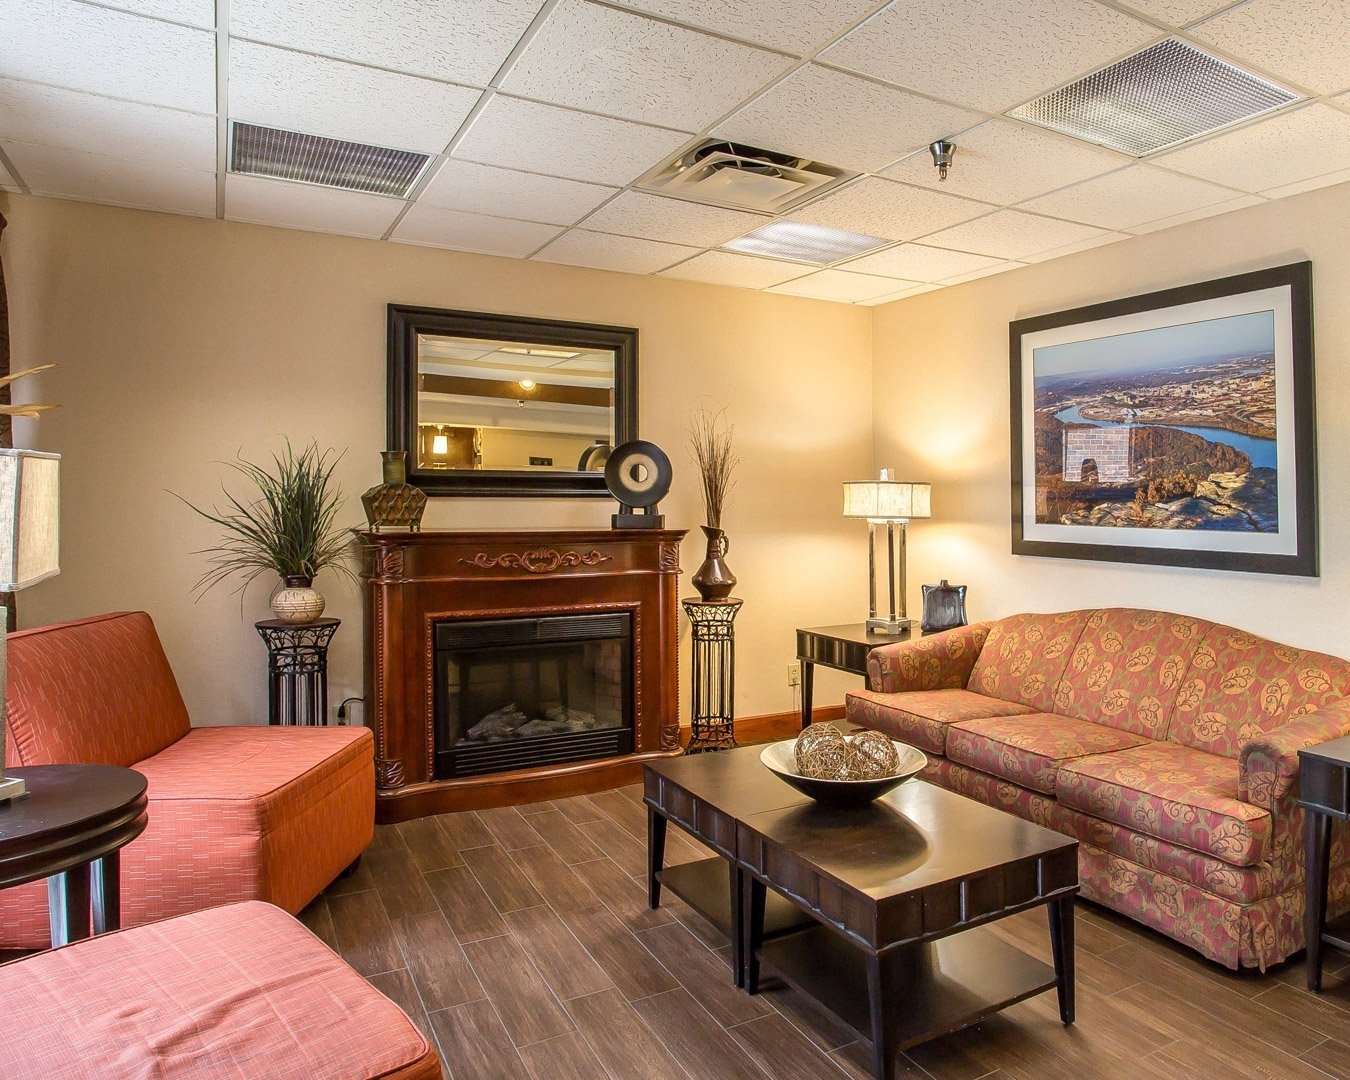 Coupons for hotels in chattanooga tn